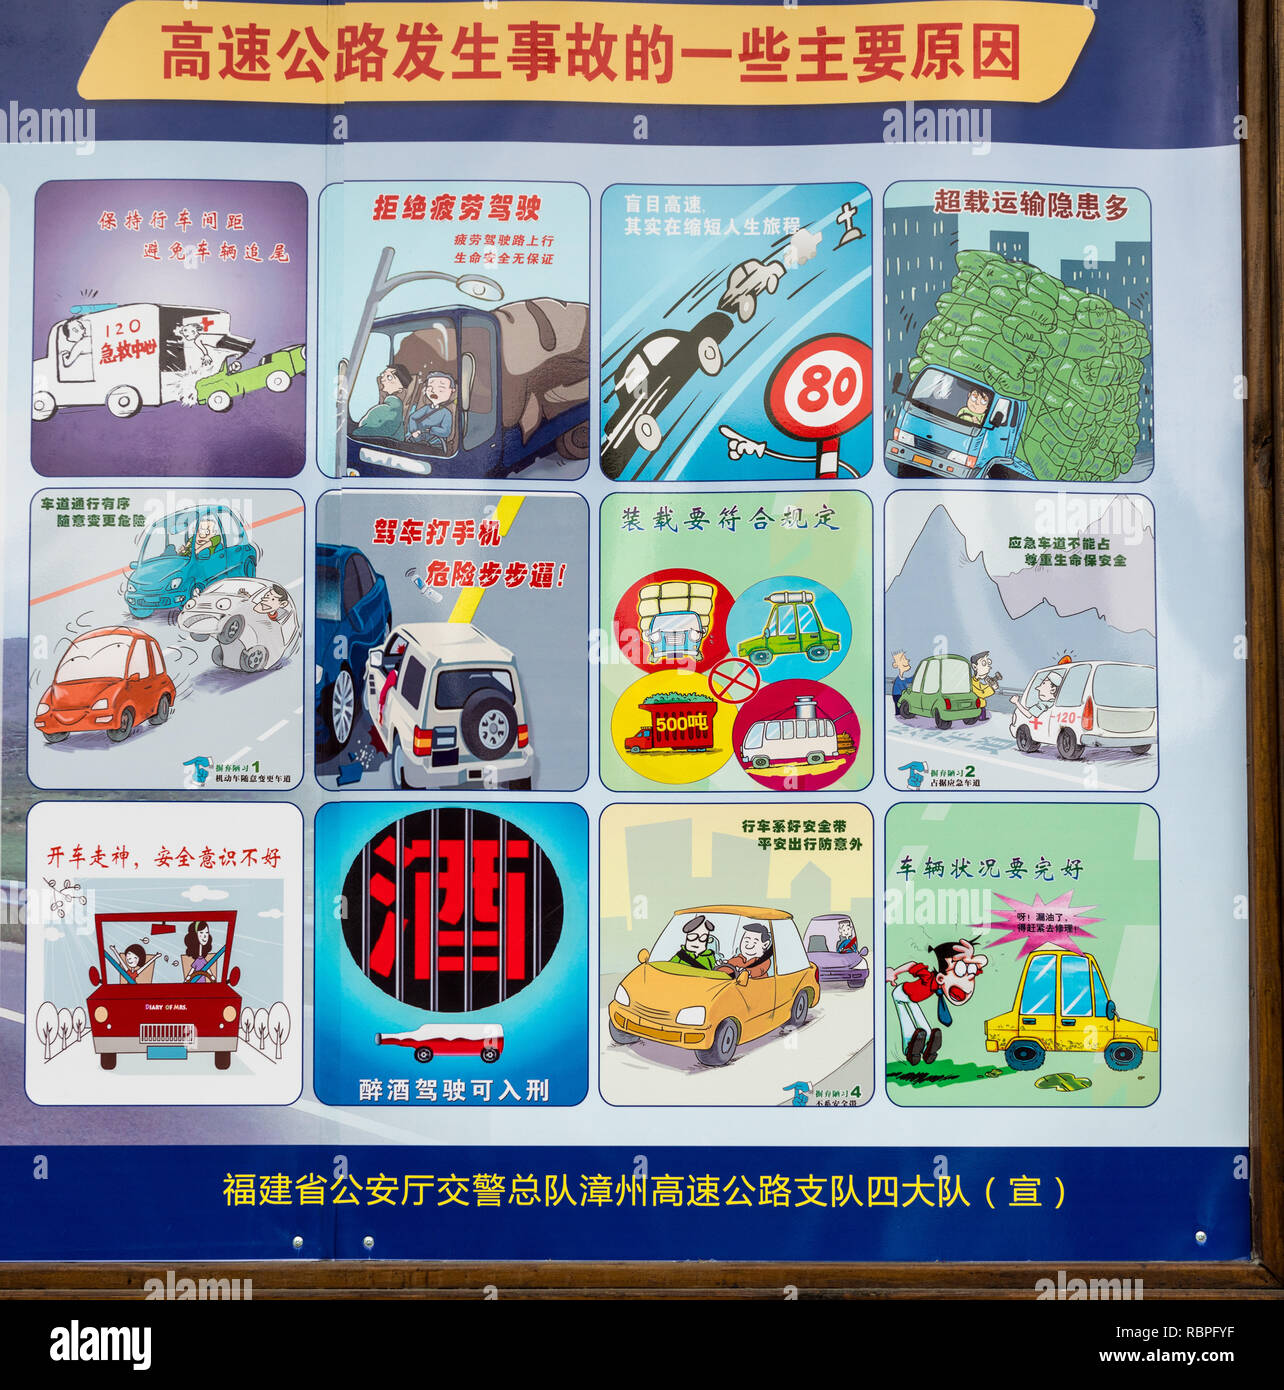 Illustration of highway code or driving rules in China - Stock Image